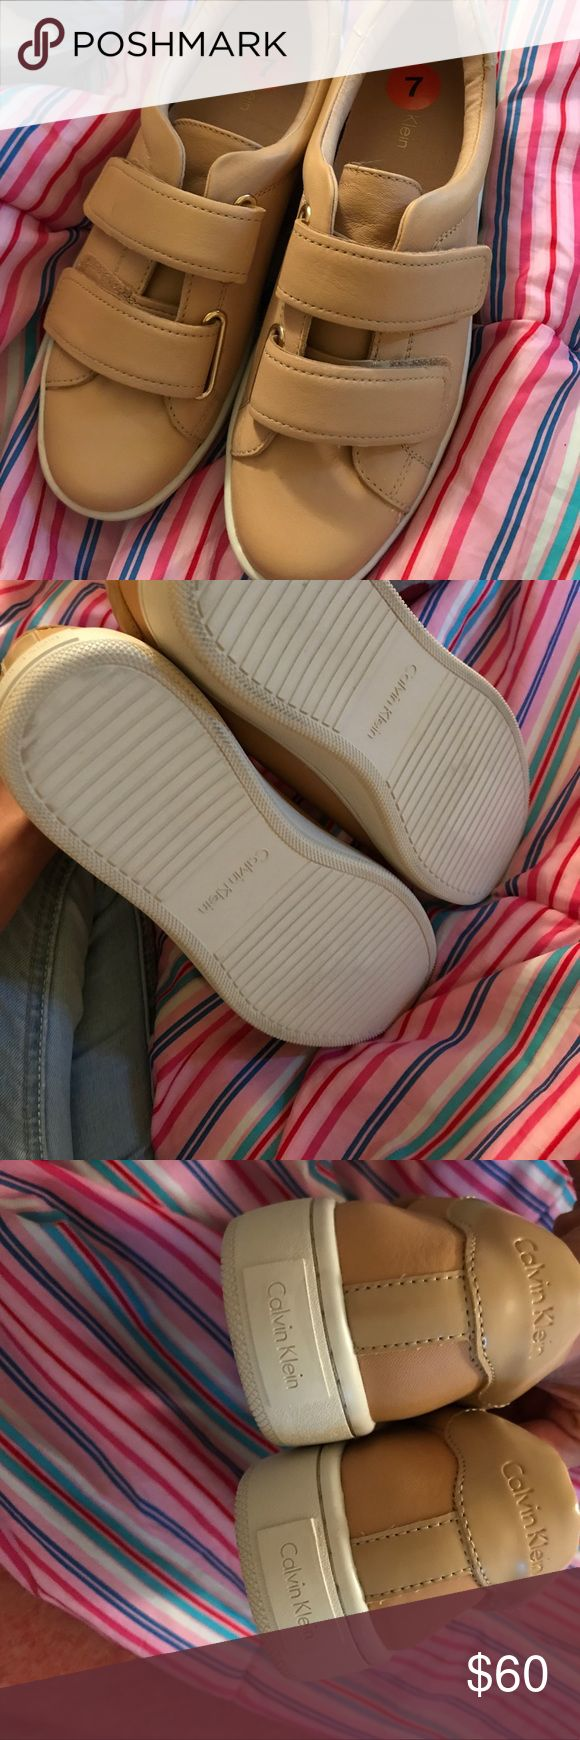 Calvin Klein Sneakers New never used Calvin Klein Shoes Sneakers